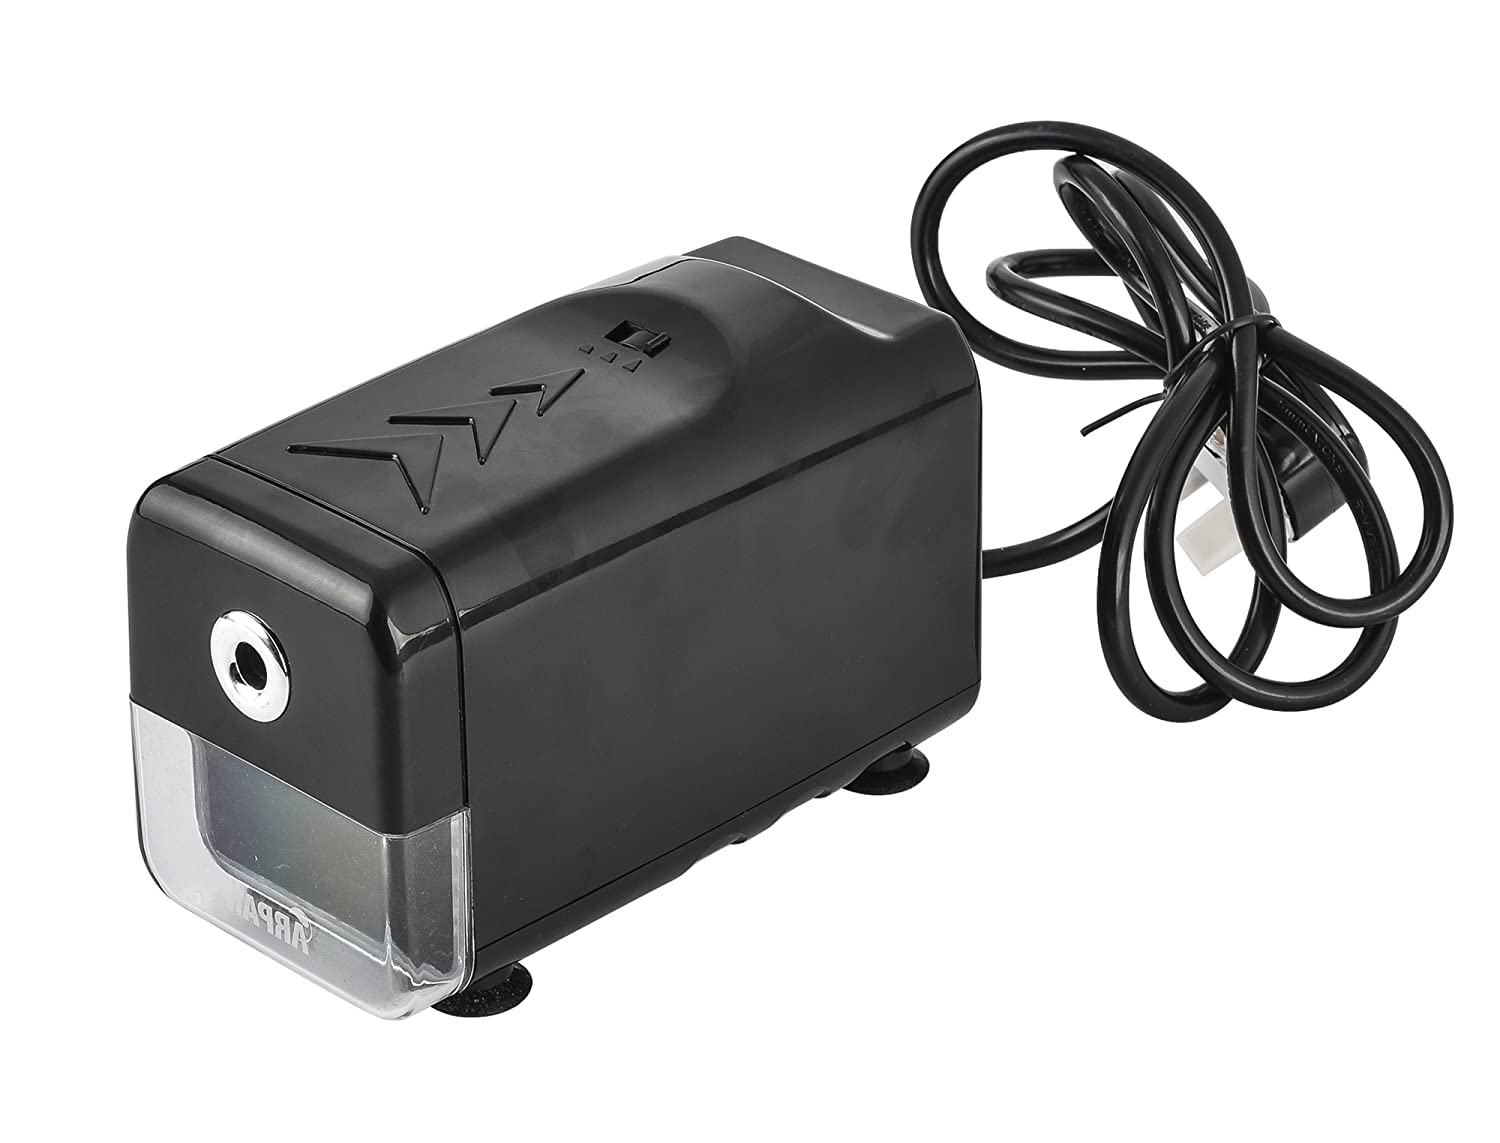 Automatic Electric Pencil Sharpener With UK Plug - Black by Arpan